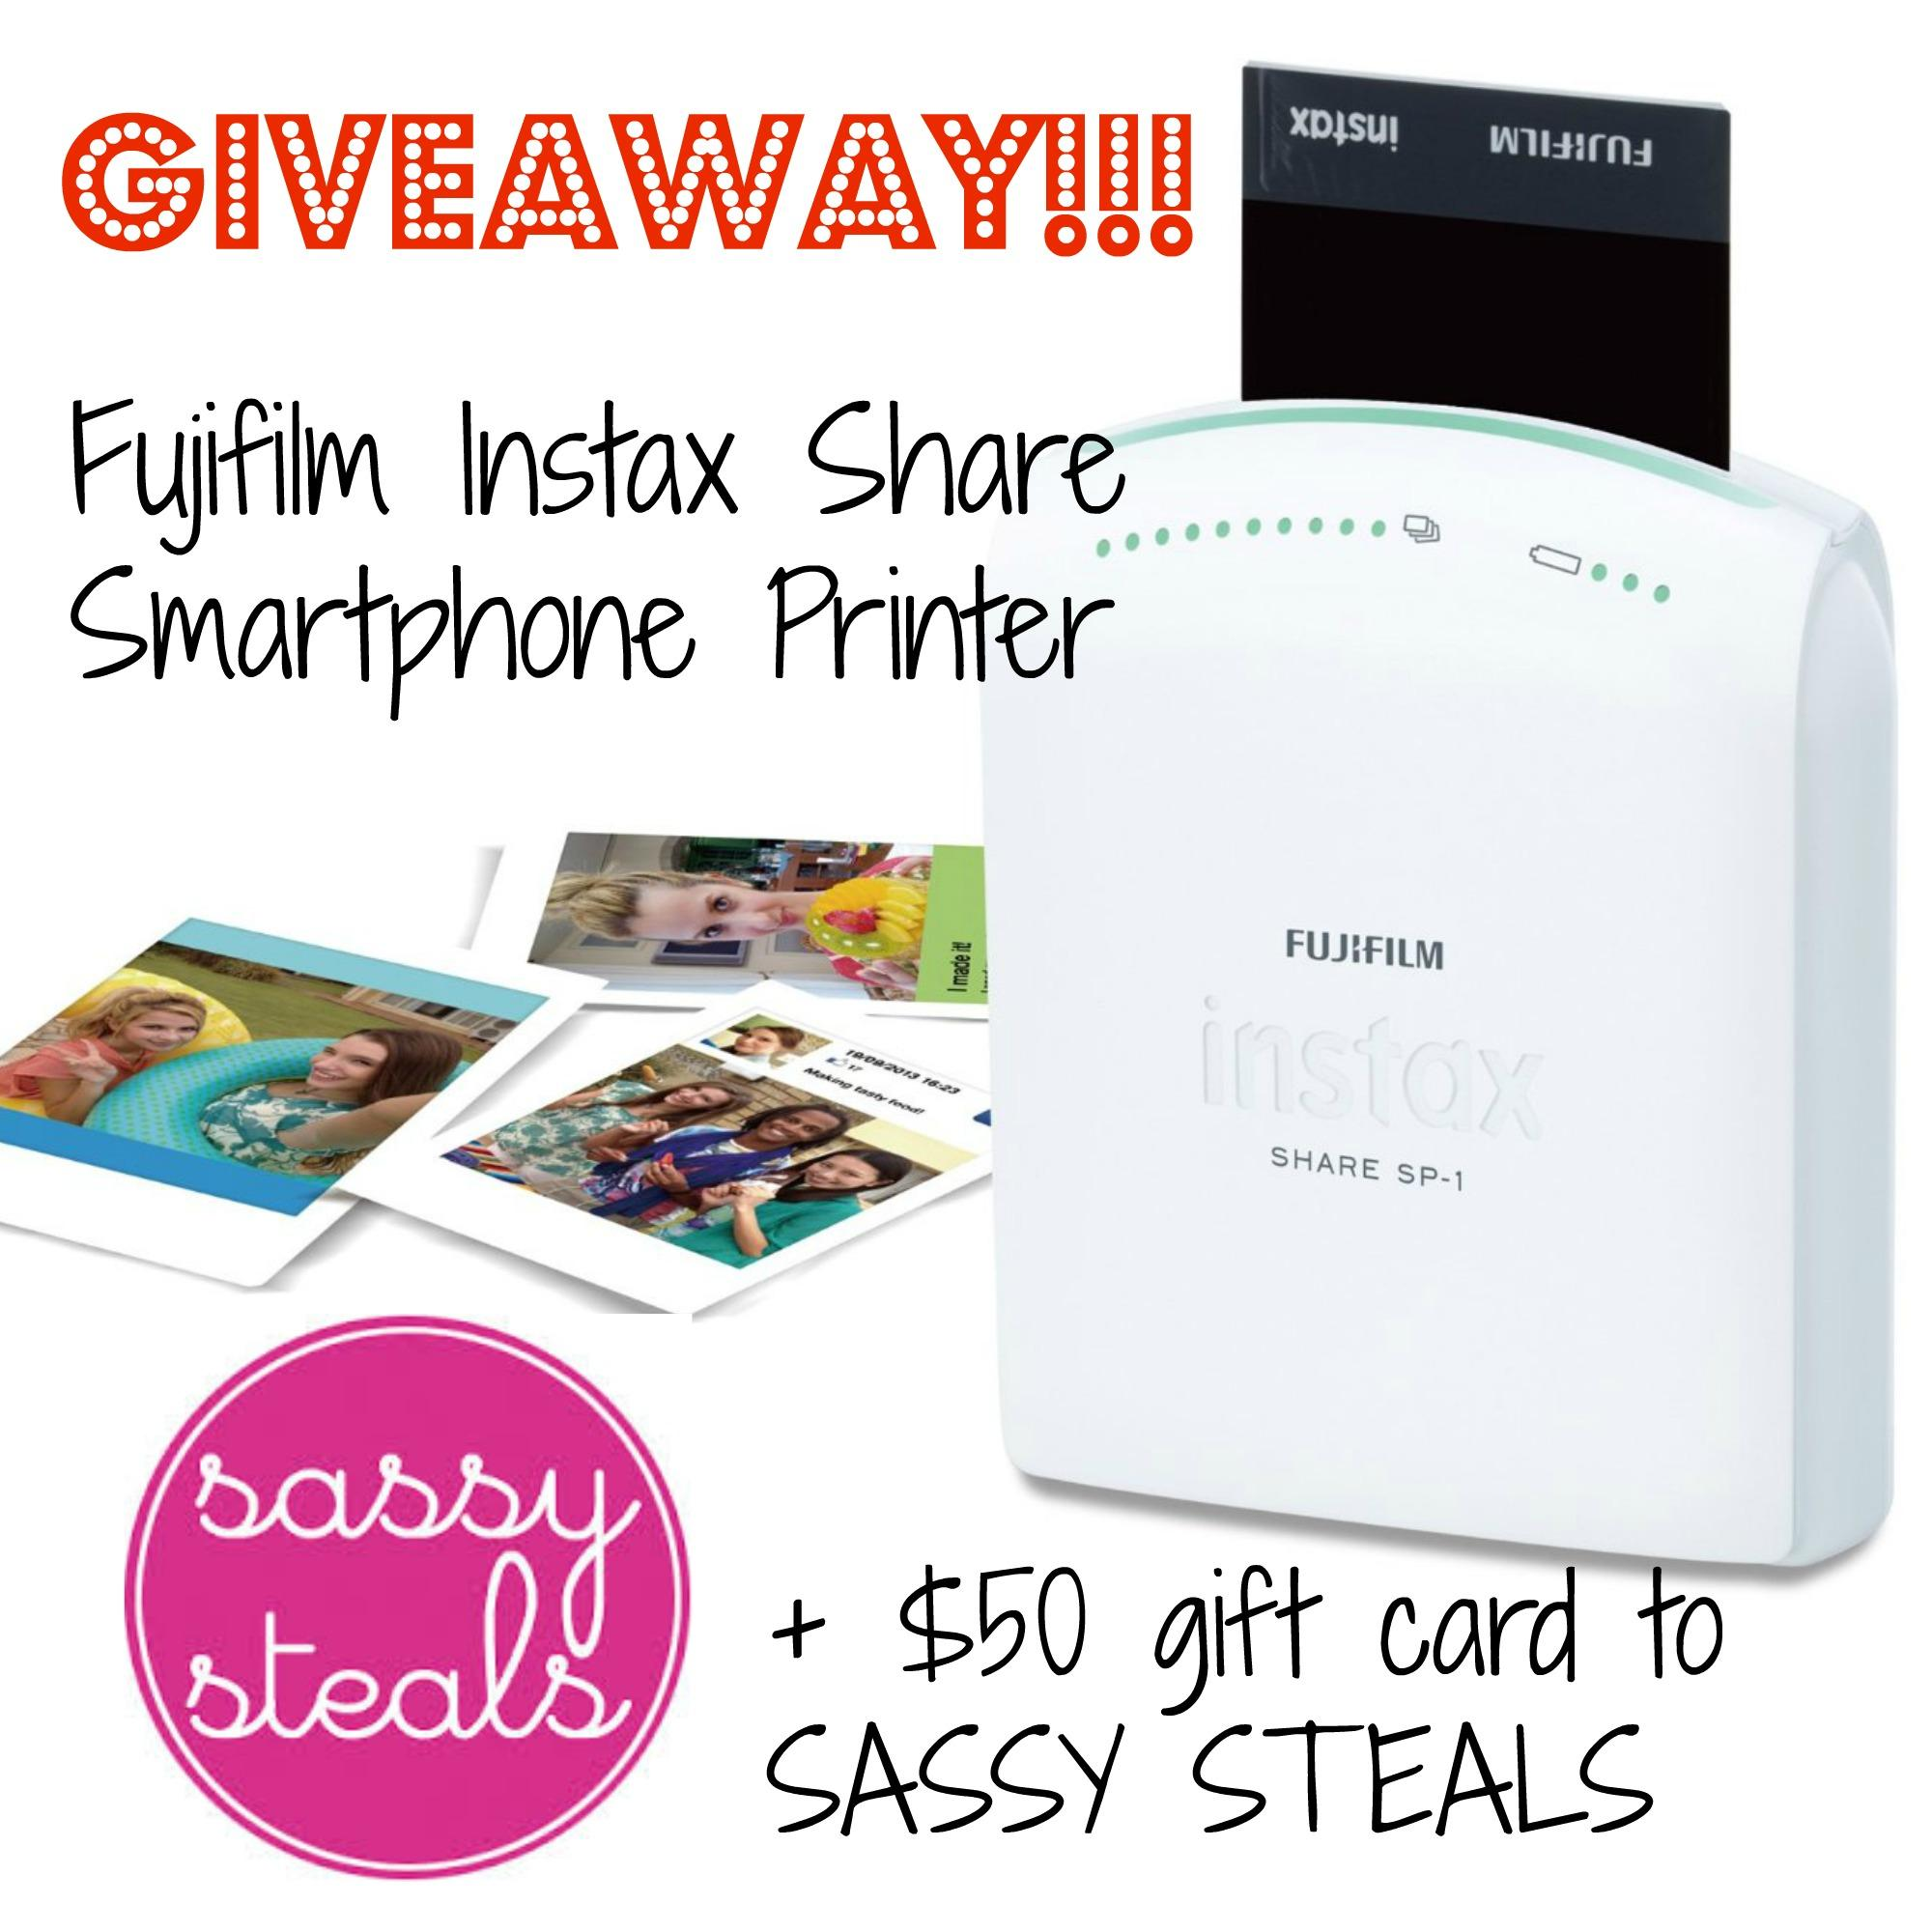 Smartphone printer giveaway